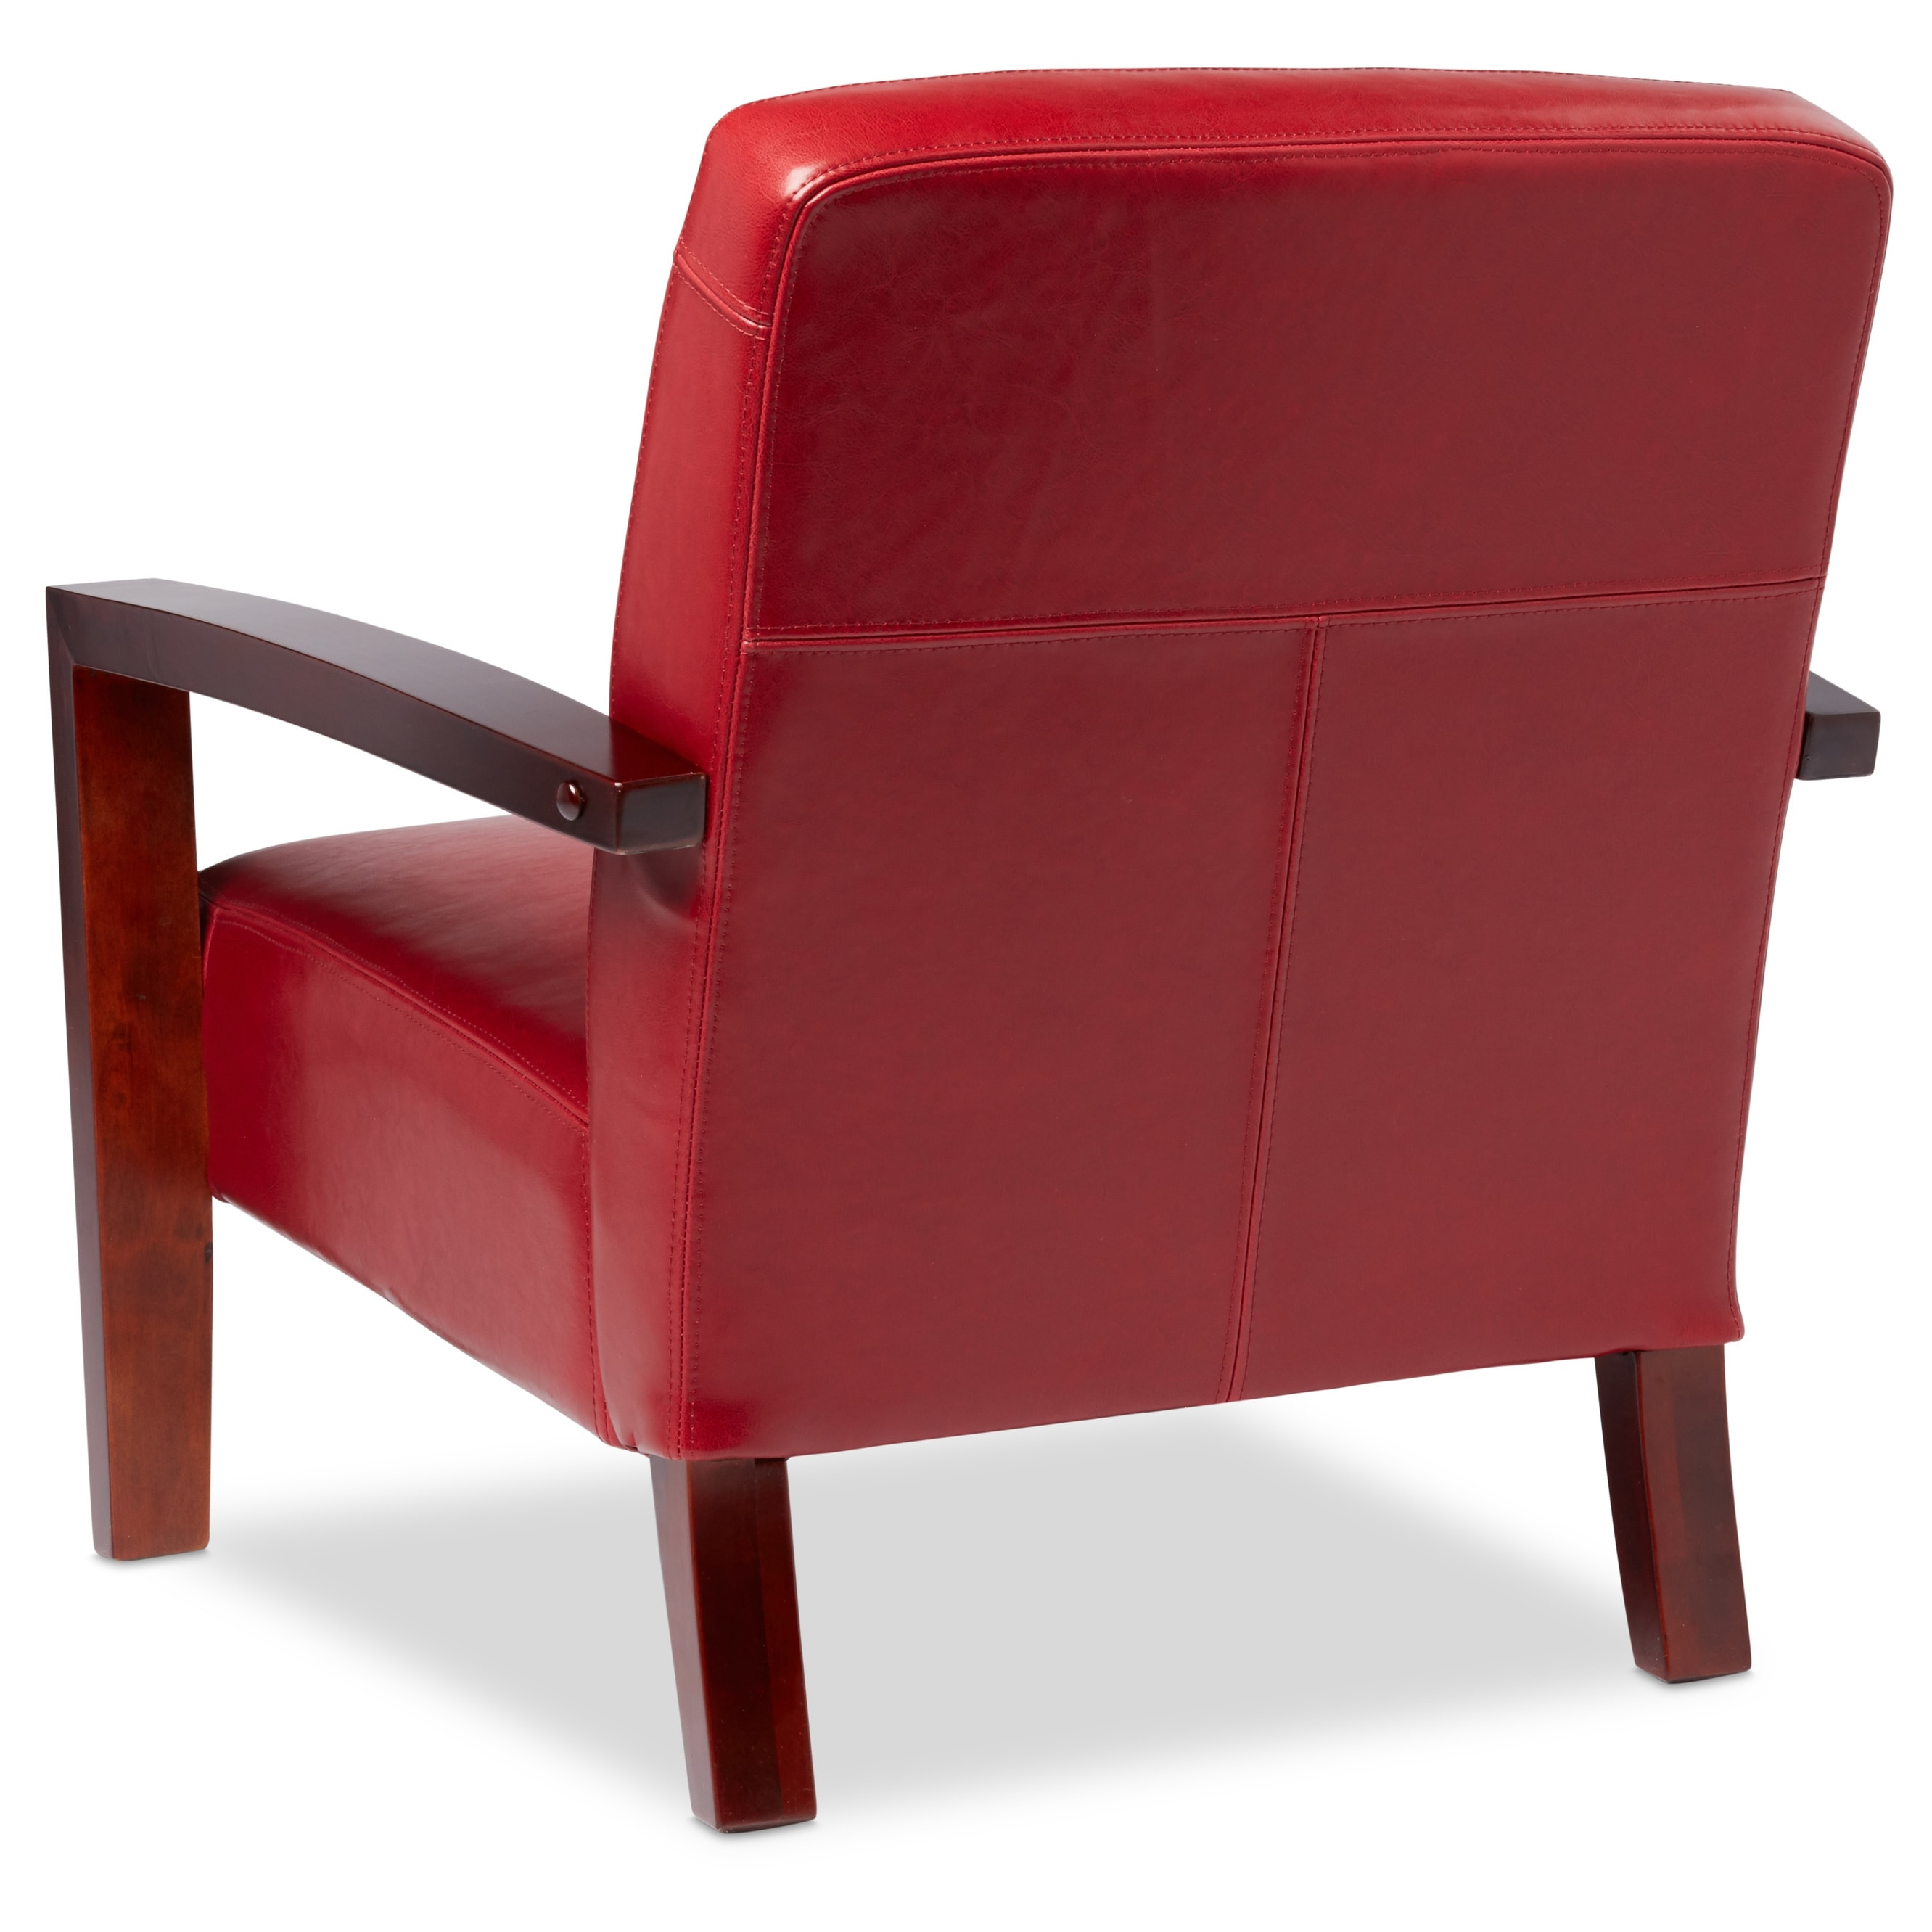 red lounge chair fishing with shade shop porch den roadster burnt leather free shipping today overstock com 2616449